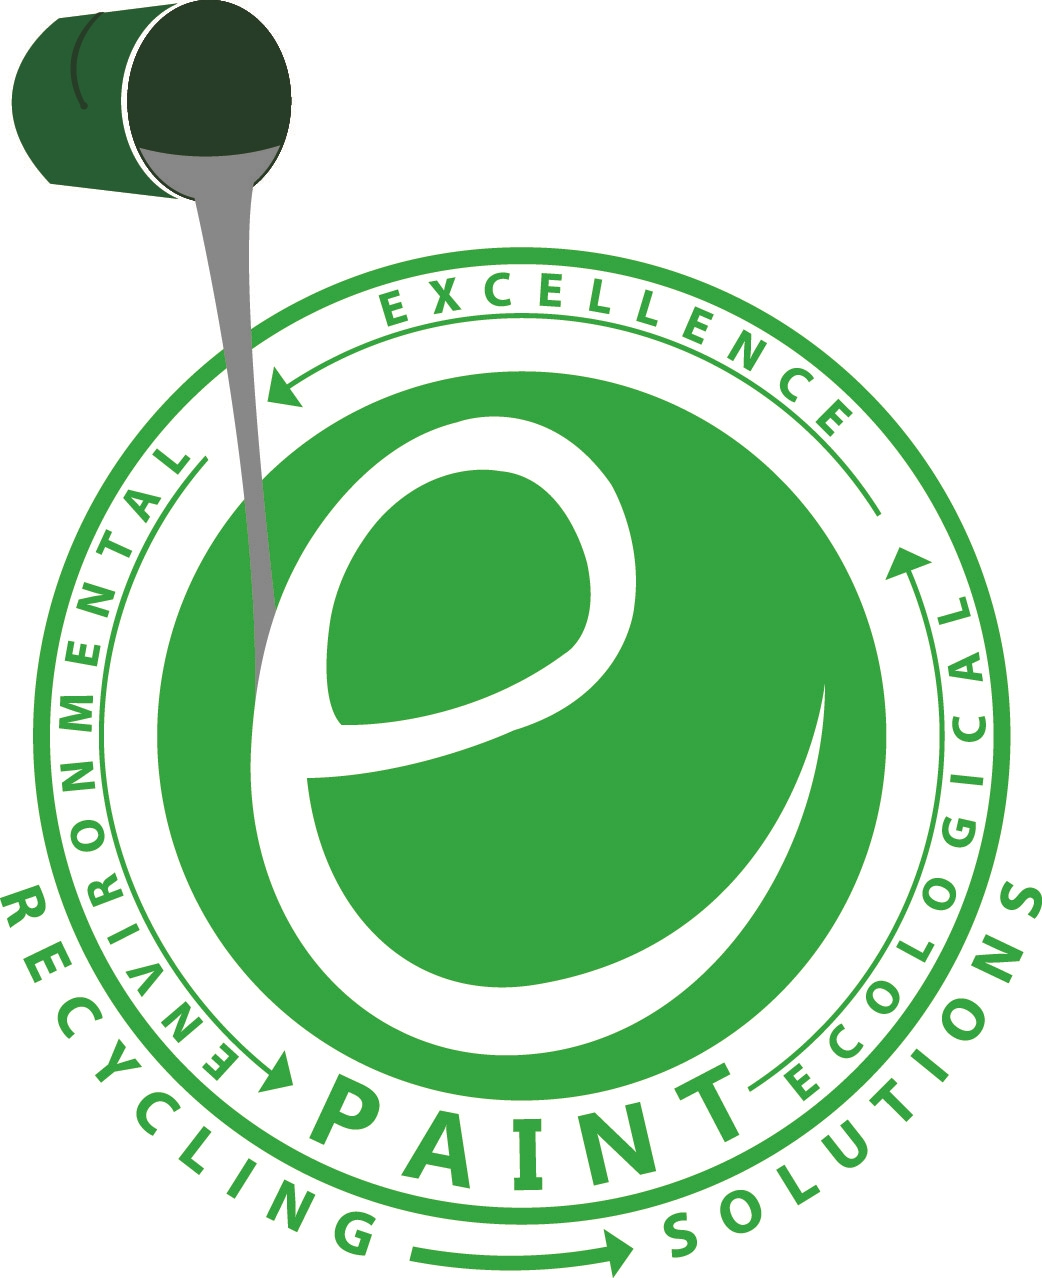 ePaintRecyclingSolutions